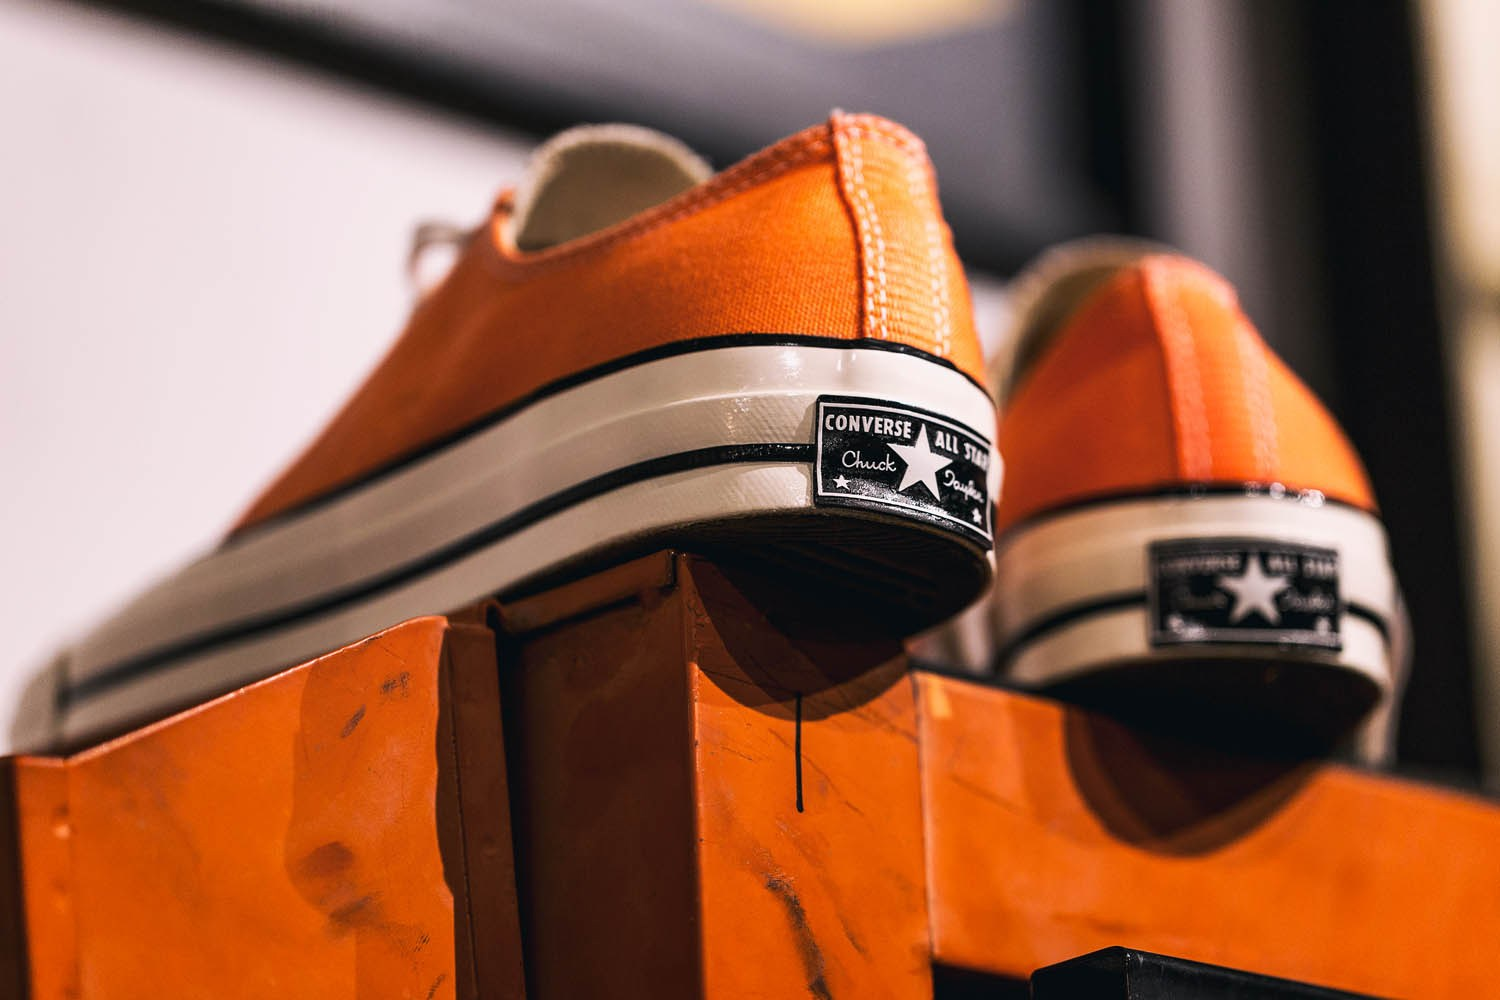 converse-shows-its-colors-with-its-latest-chuck-taylor-all-star-70s-release-17